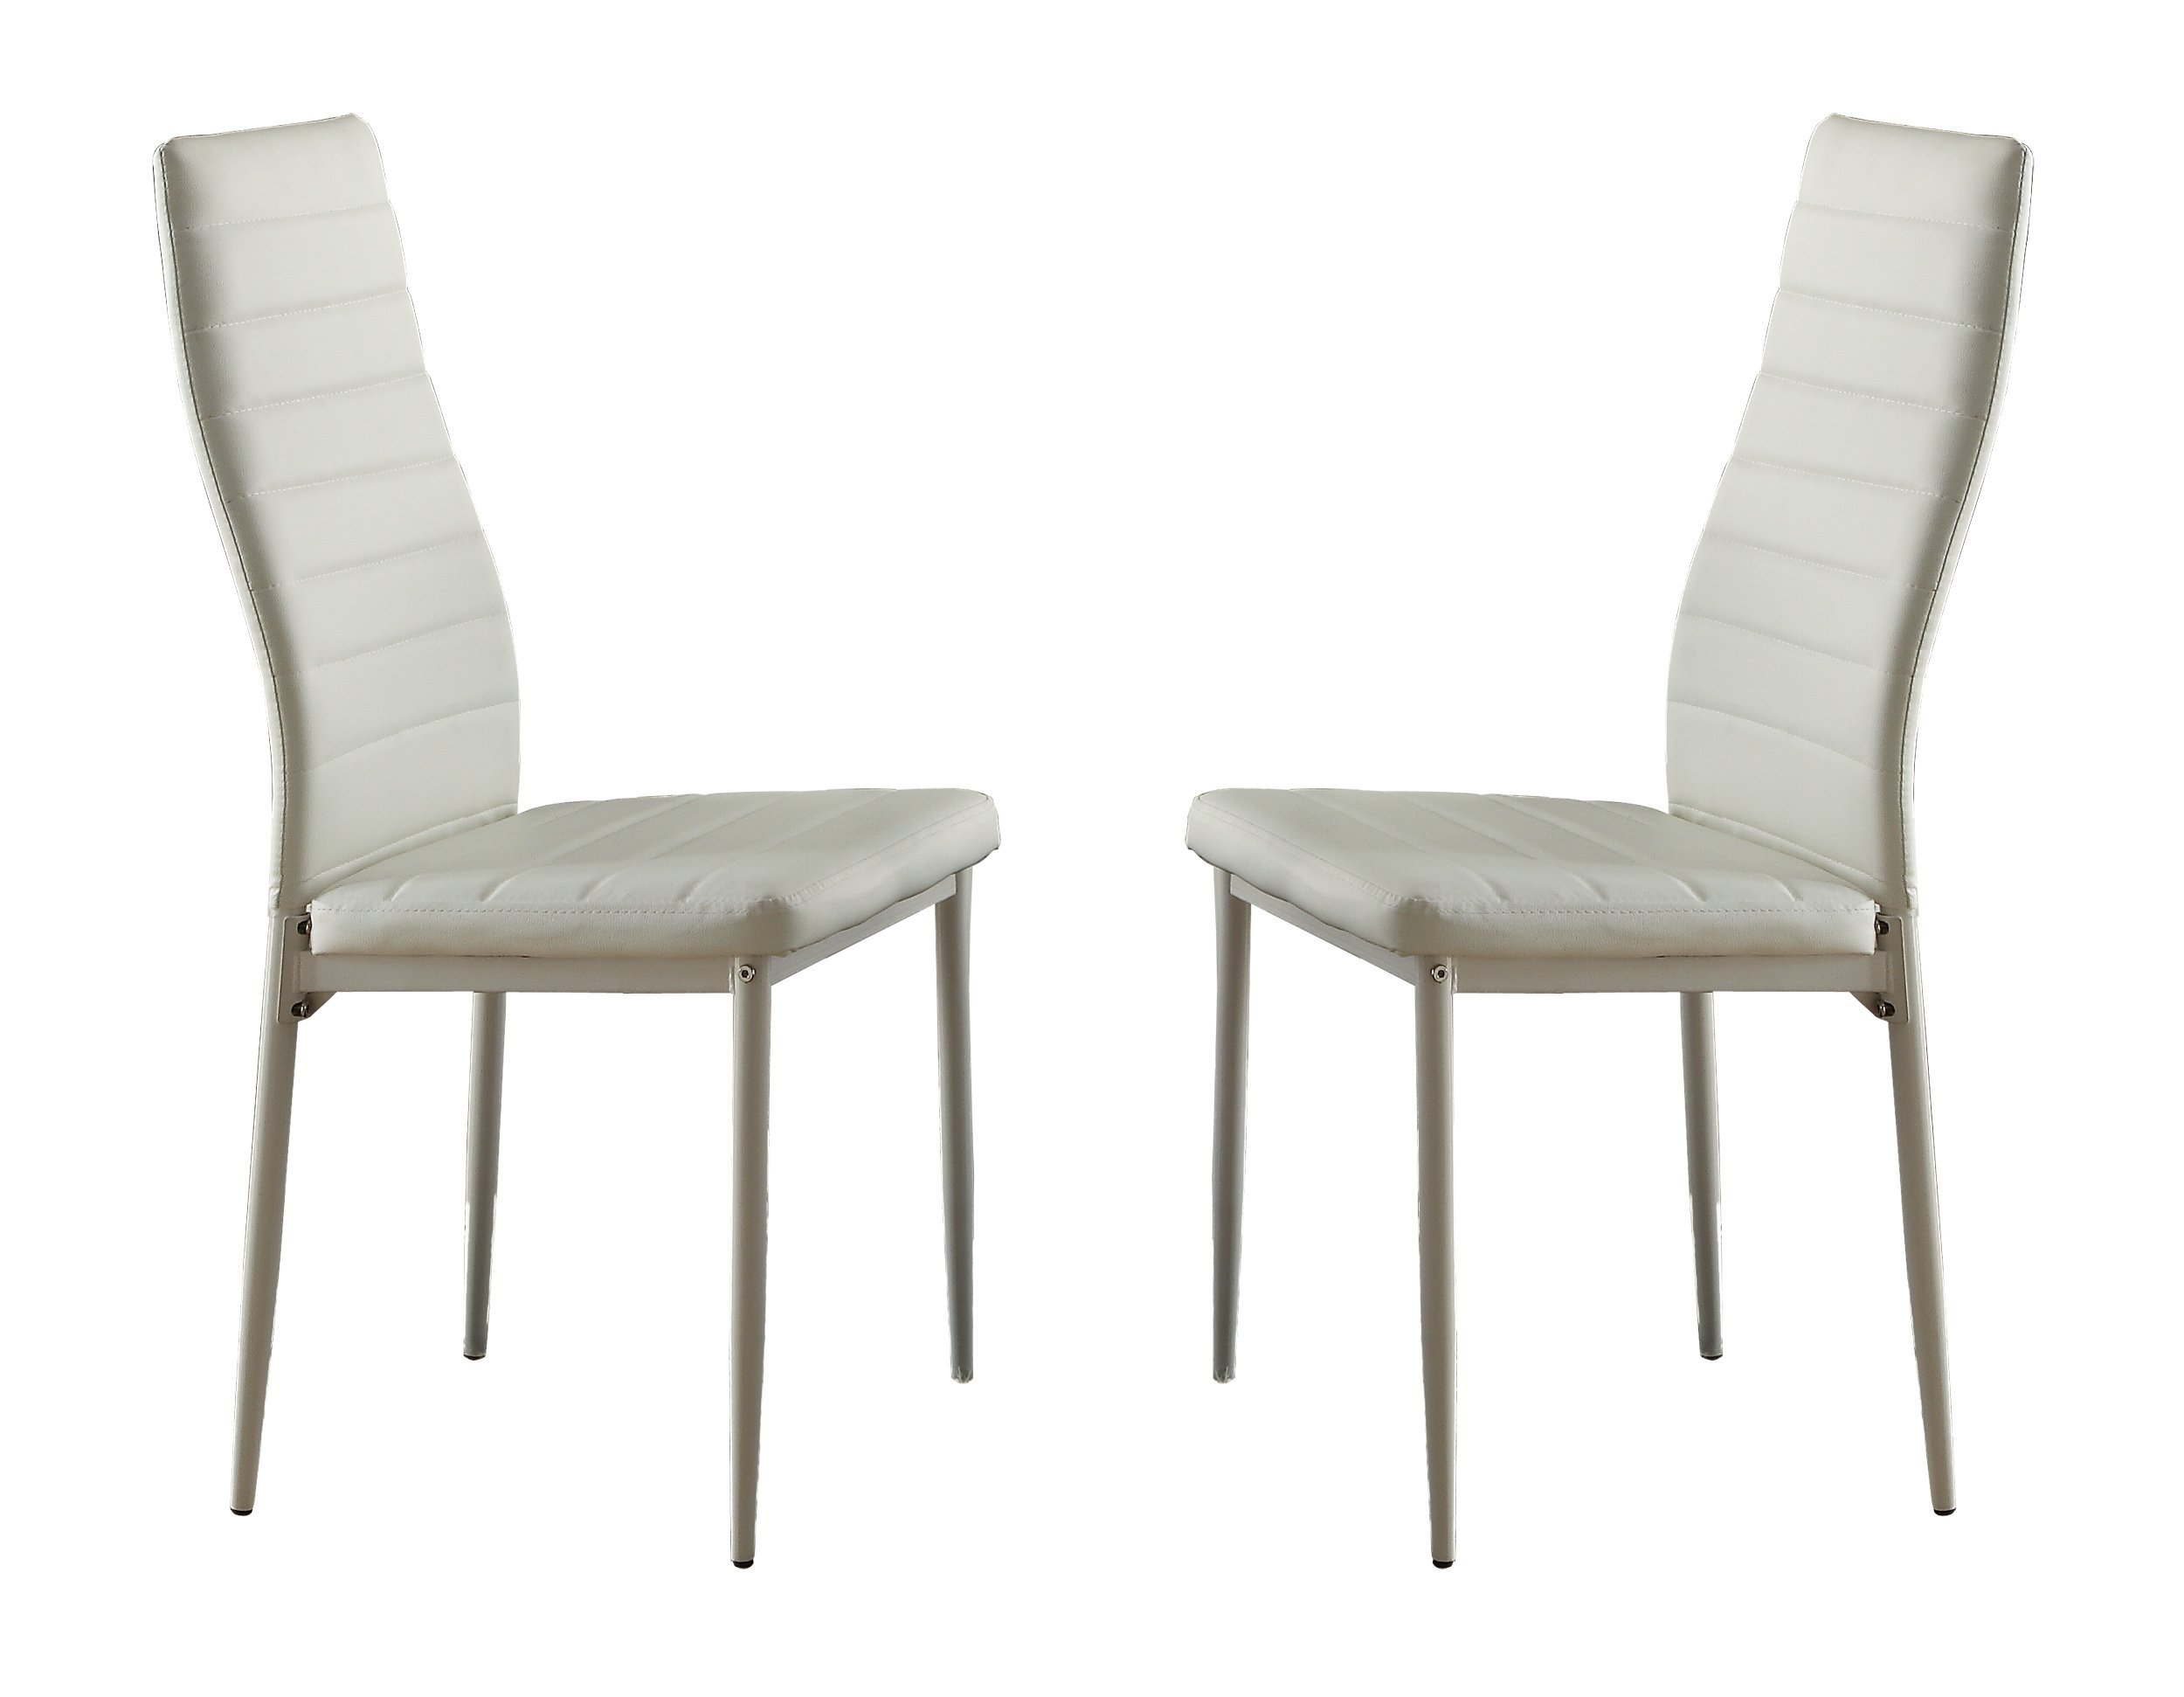 Homelegance Florian Metal Dining Chairs with Bi-Cast Vinyl Back and Seat Cover (Set of 2), White